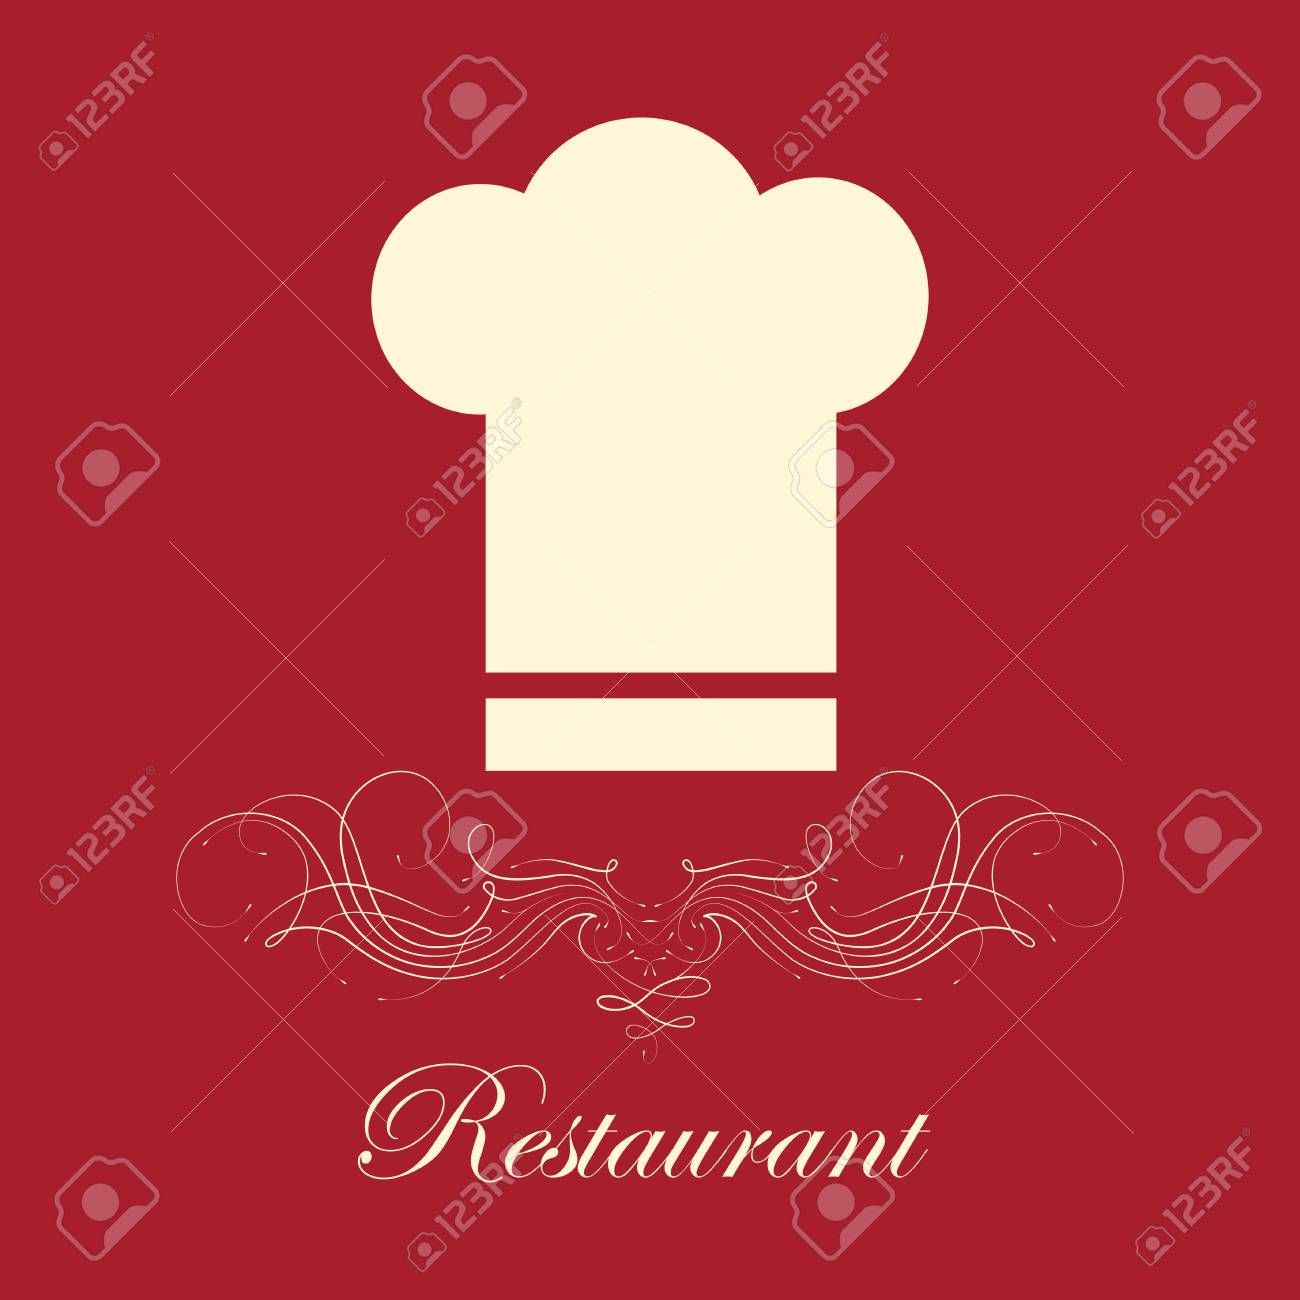 restaurant menu design over red background,vector illustration